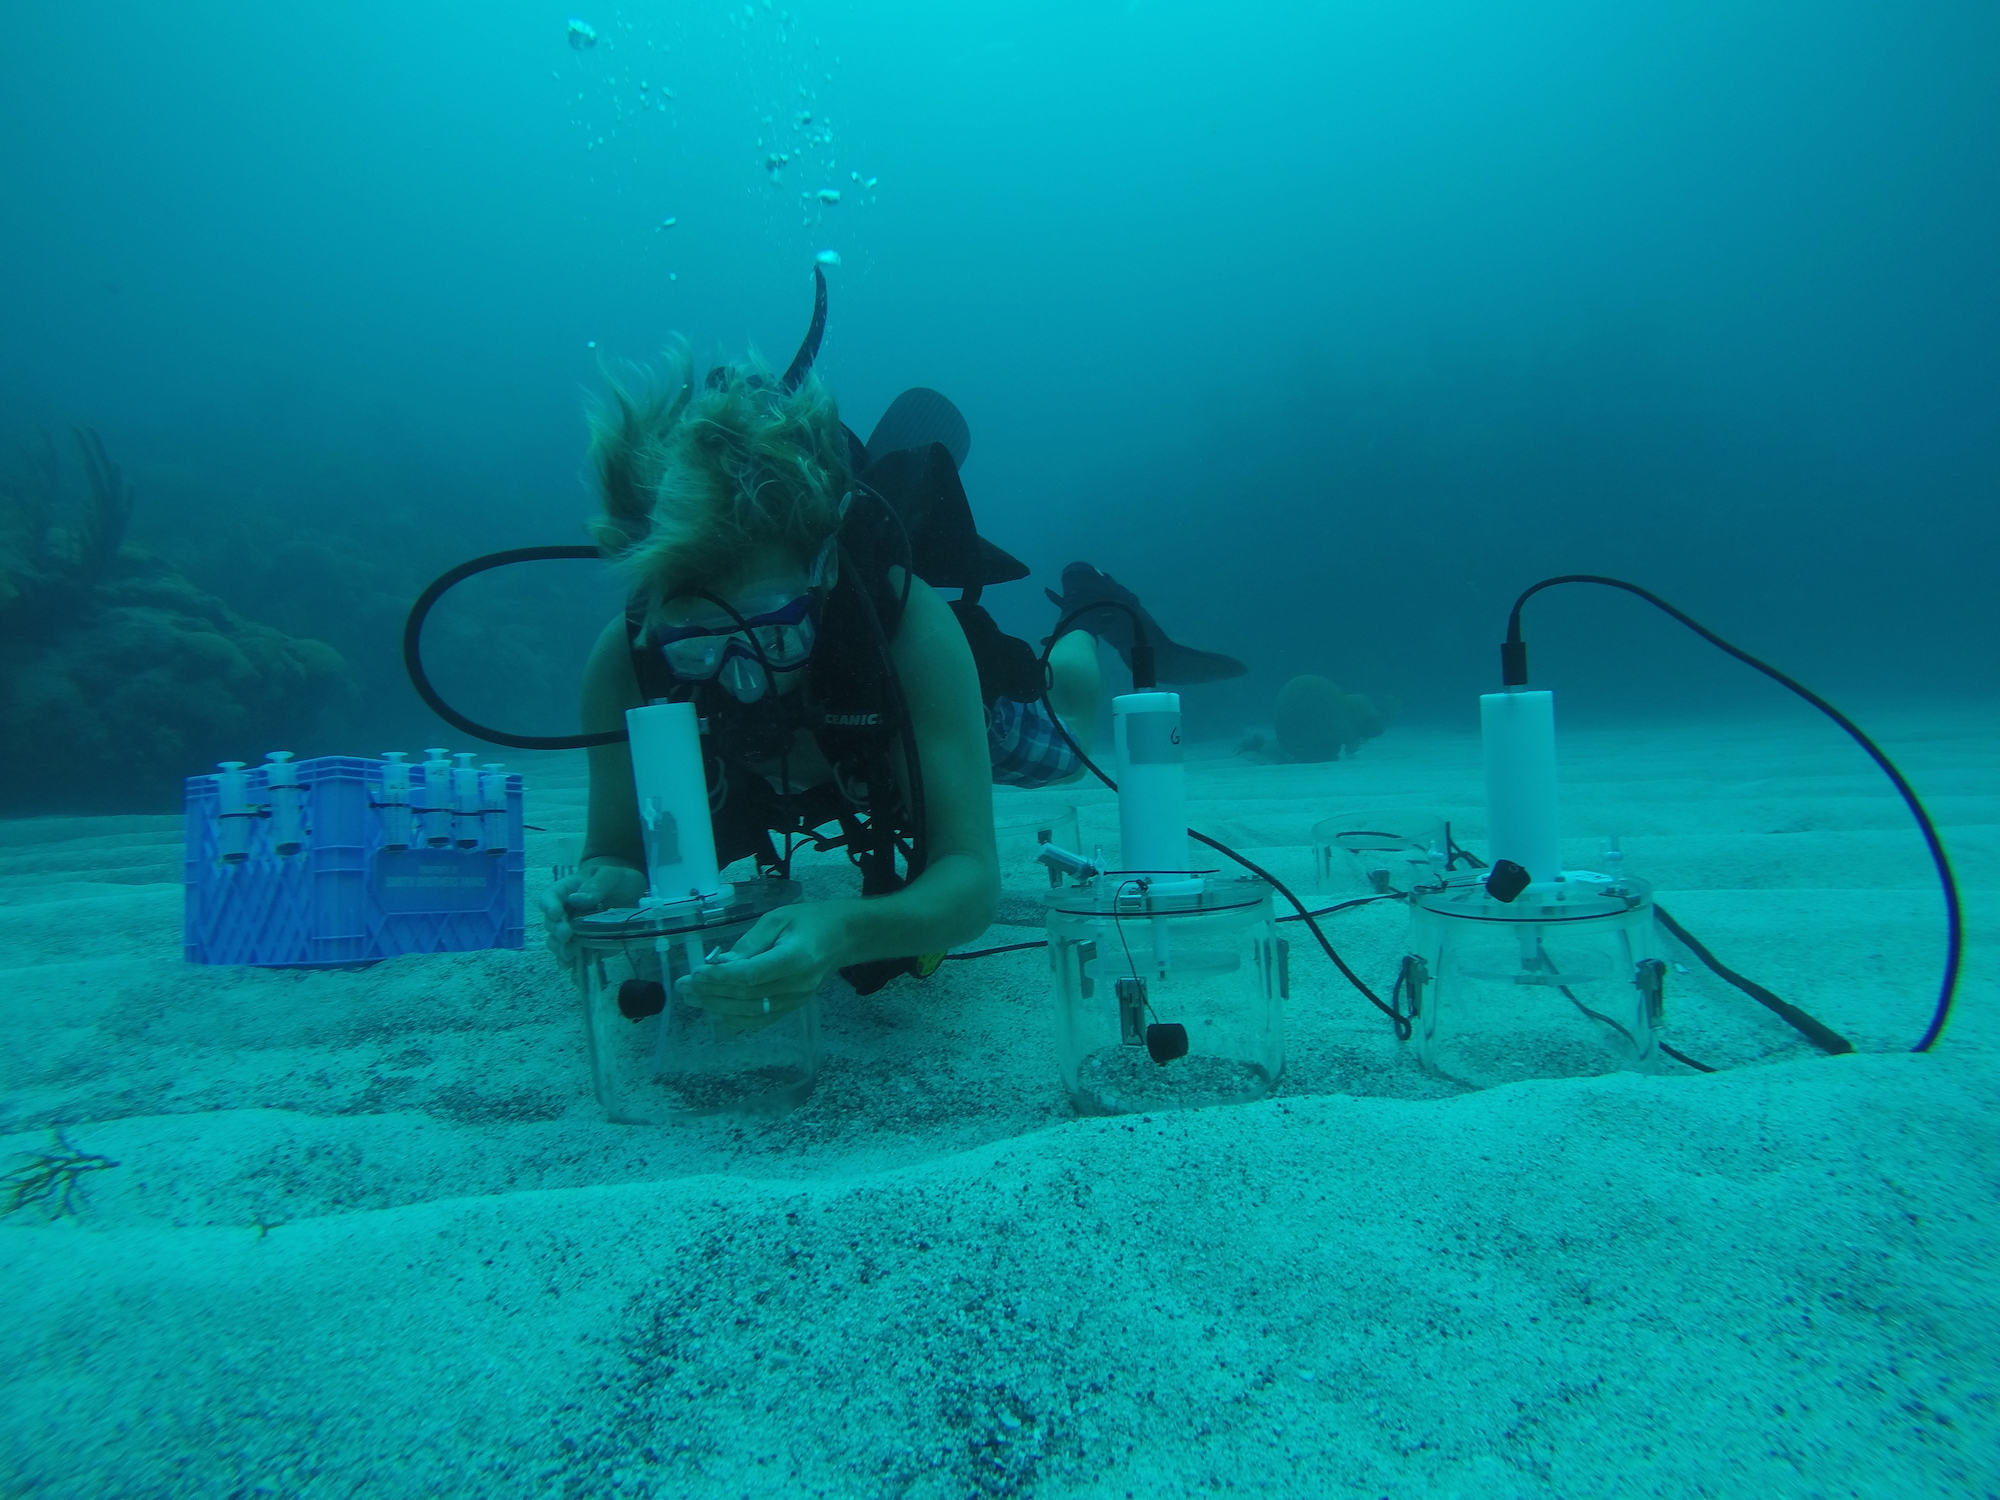 Diver using benthic chambers.